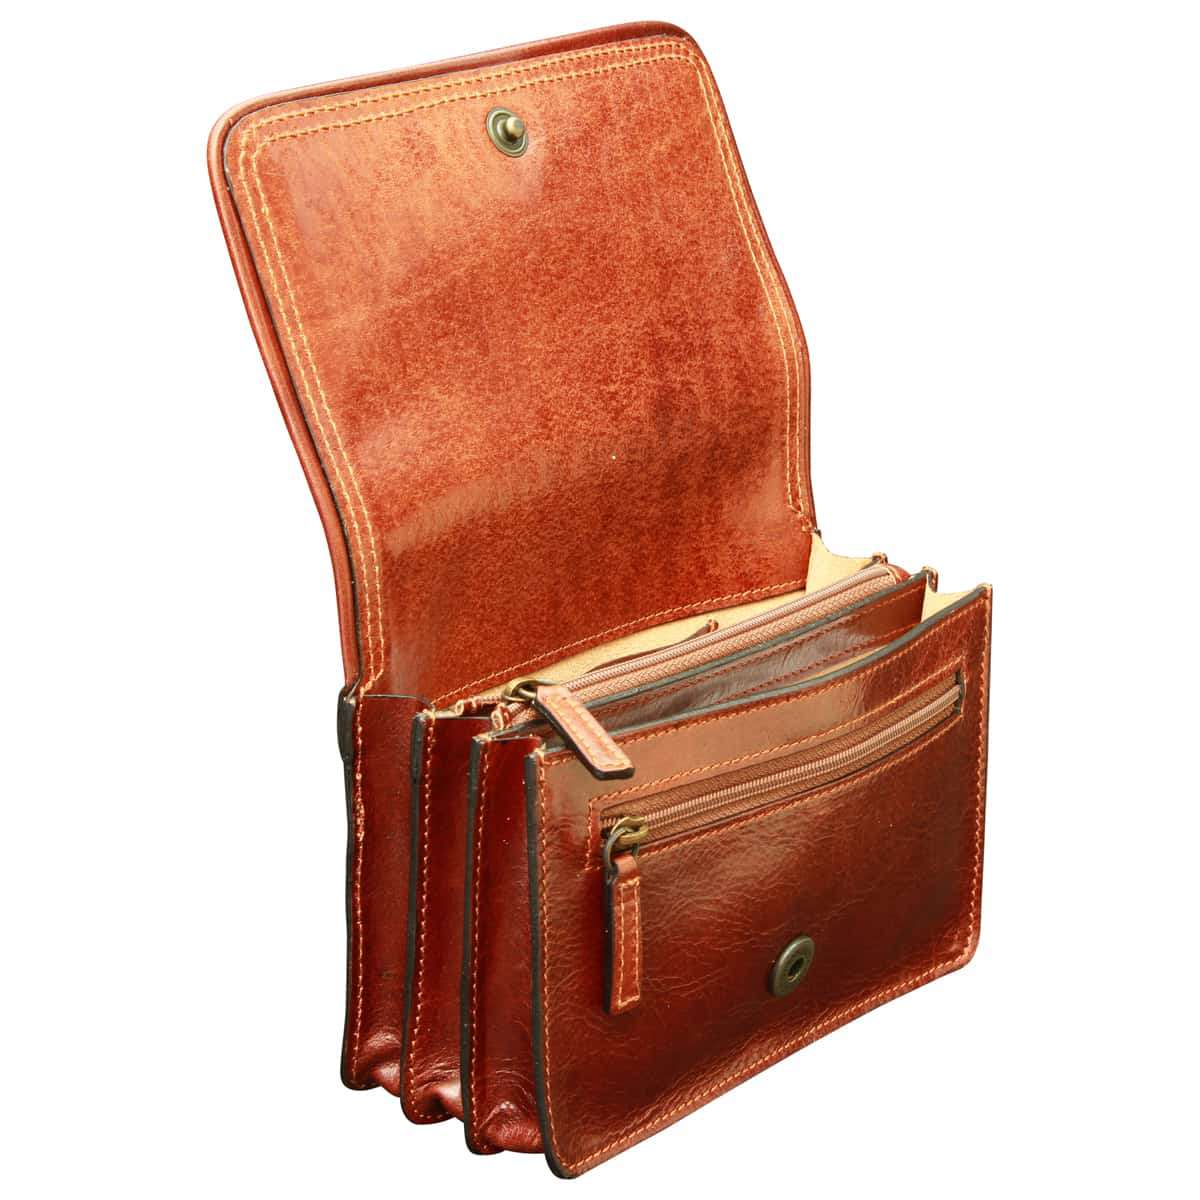 Leather pochette - Brown | 407905MA UK | Old Angler Firenze